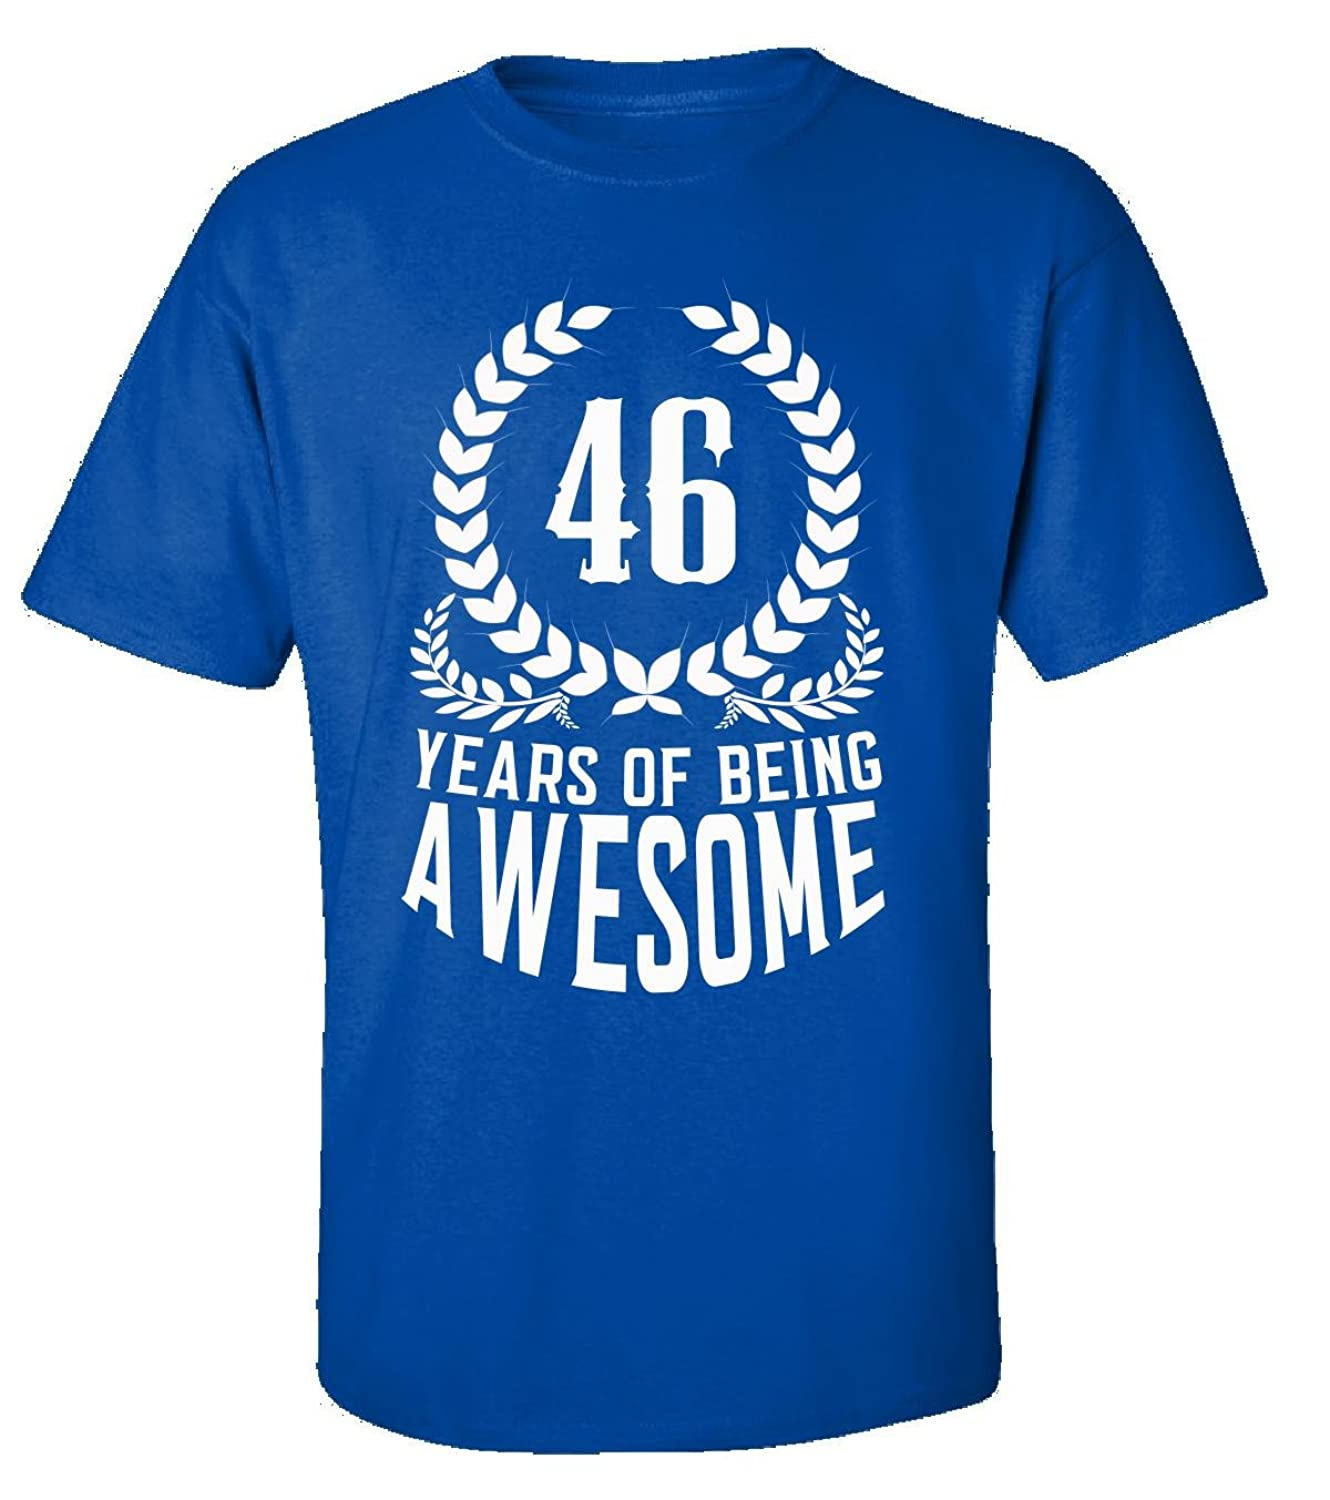 46th Birthday Gift For Men Woman 46 Years Of Being Awesome - Adult Shirt